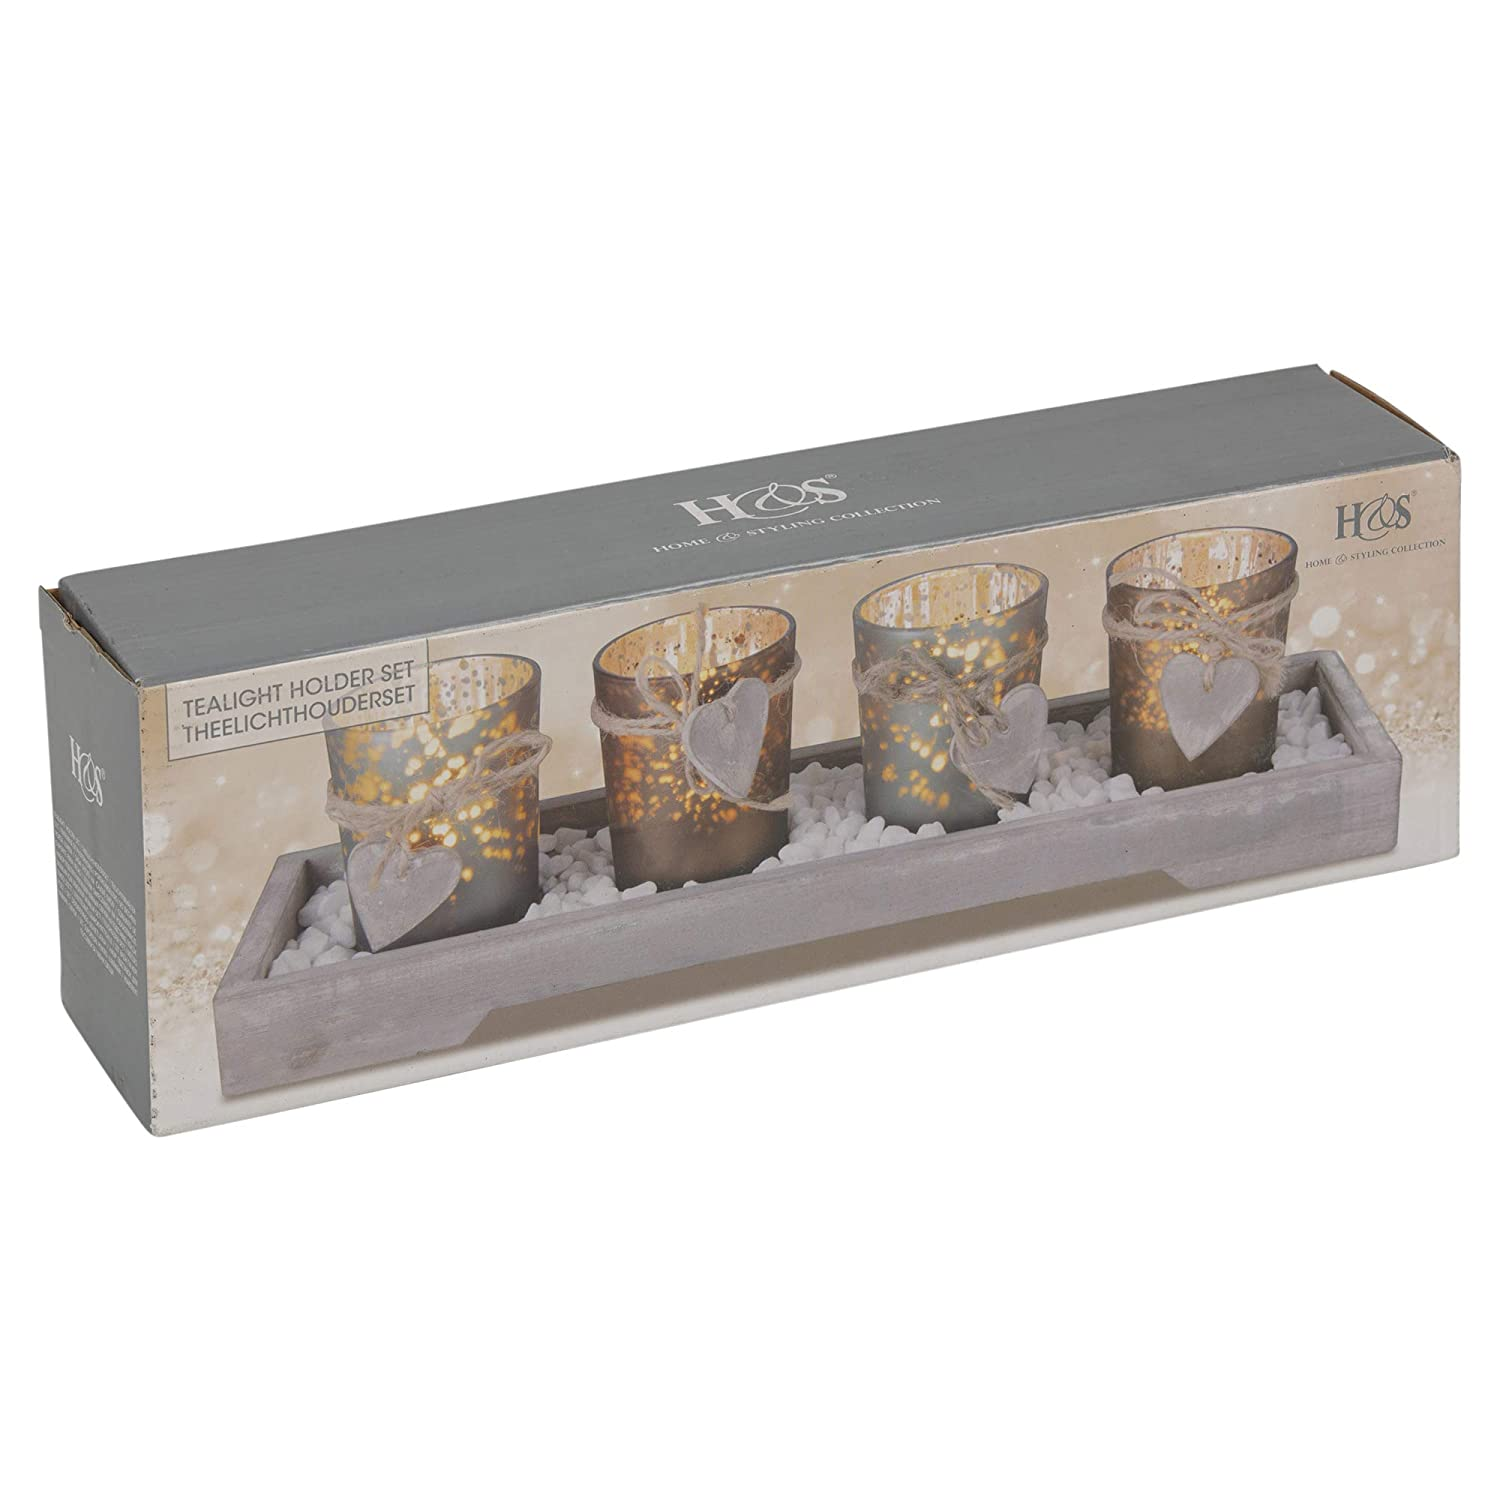 URBNLIVING Home Decor 4 Tea Light Holder With Wooden Tray Brown and Grey